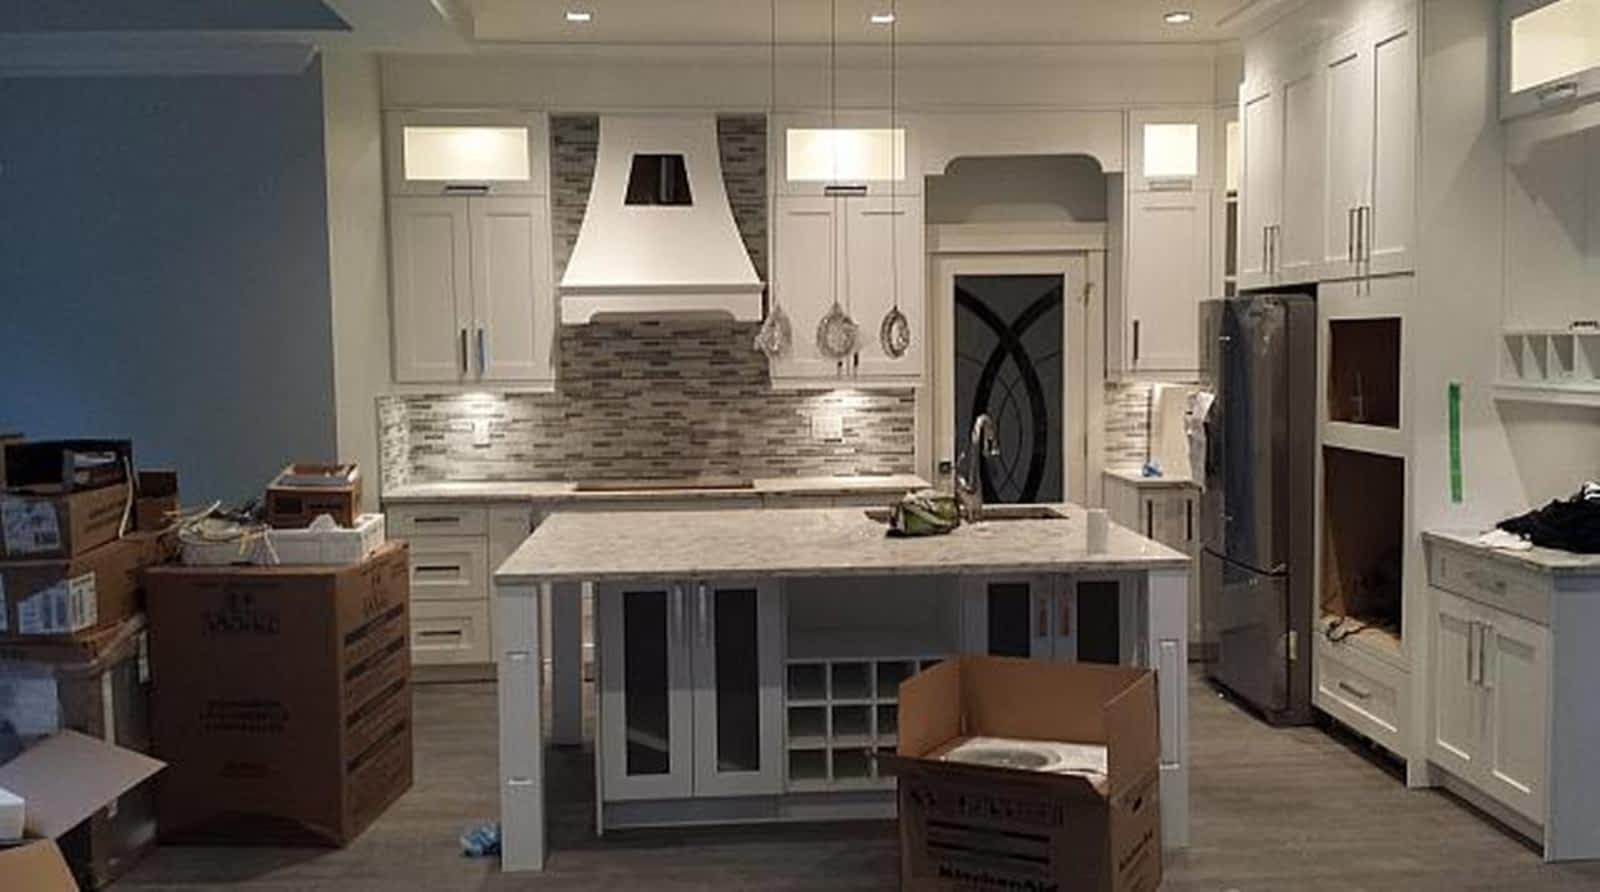 legacy kitchen cabinets cabinet door replacements ltd opening hours 104 12940 80 ave surrey bc